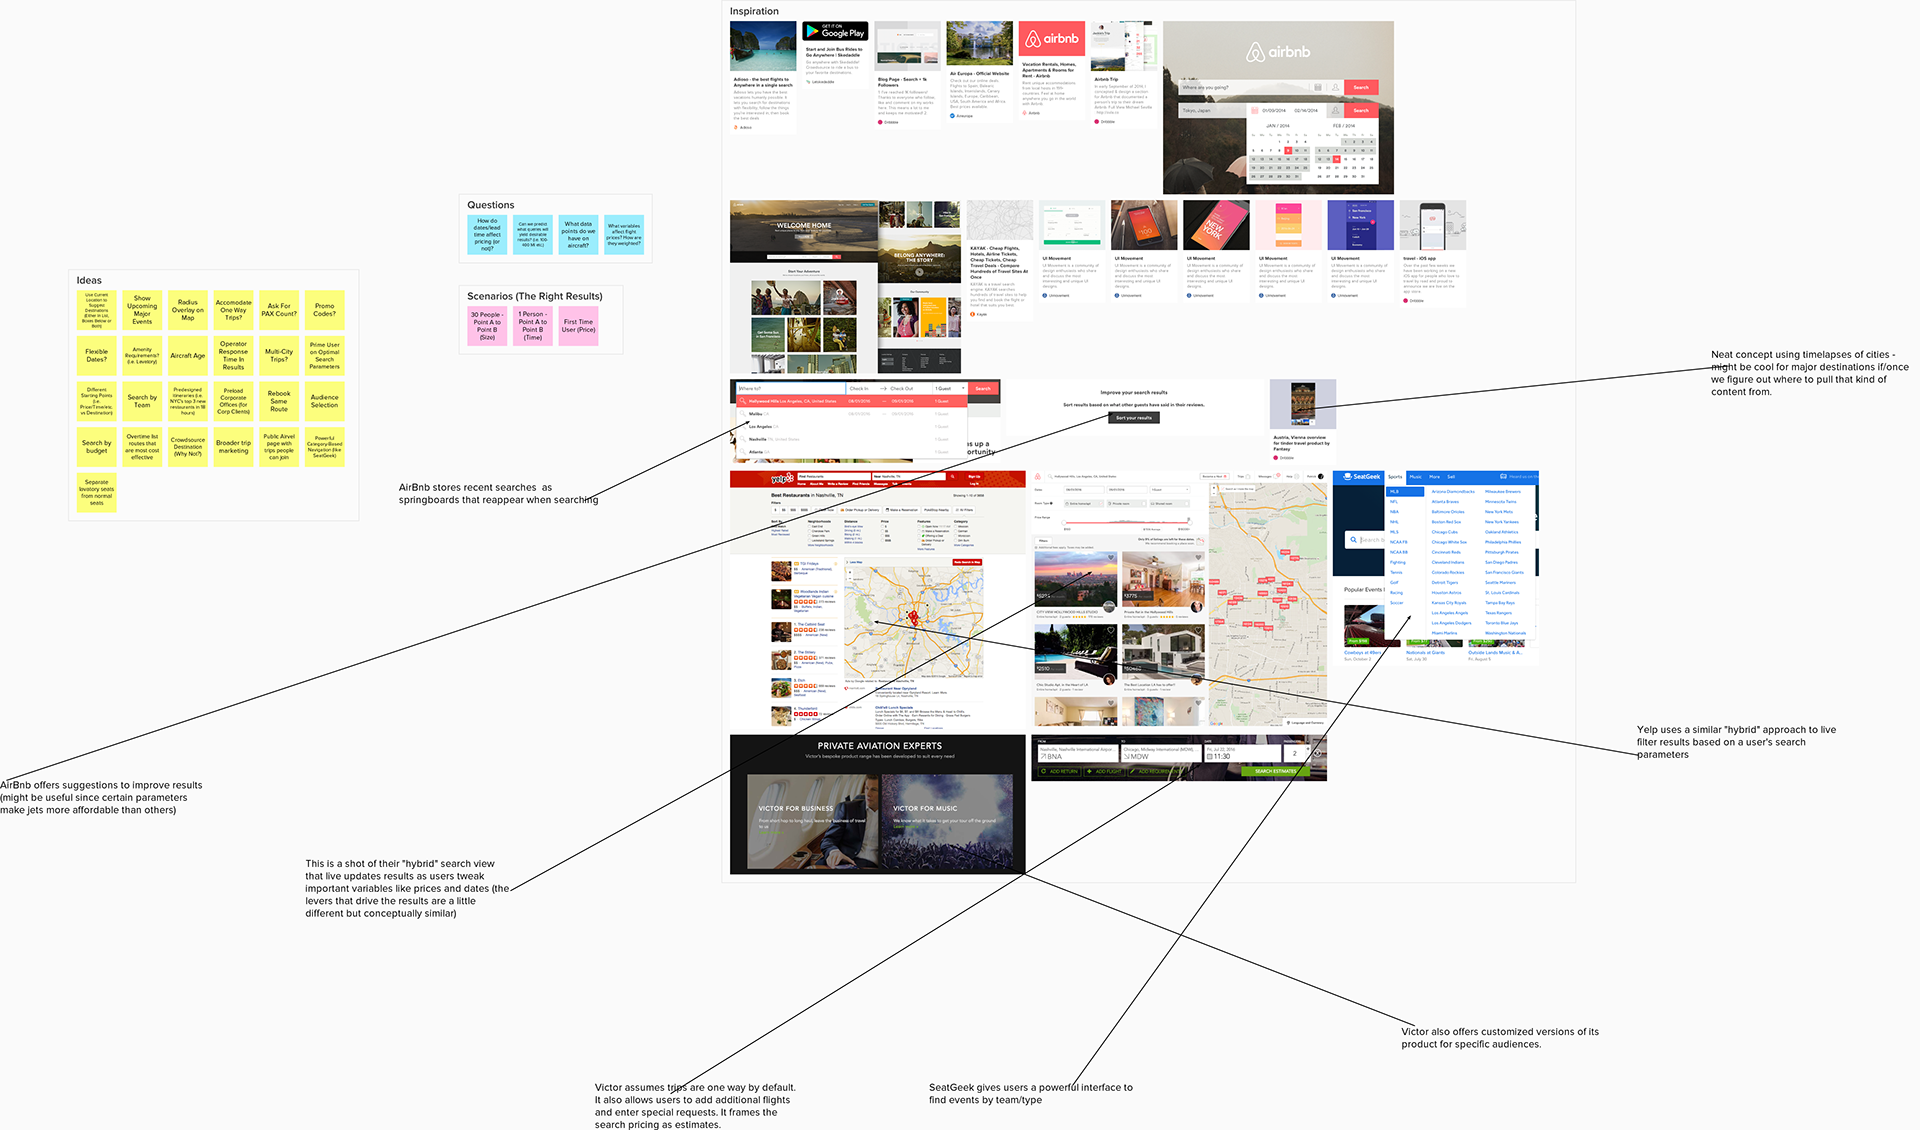 UX Research From Other Digital Travel Experiences